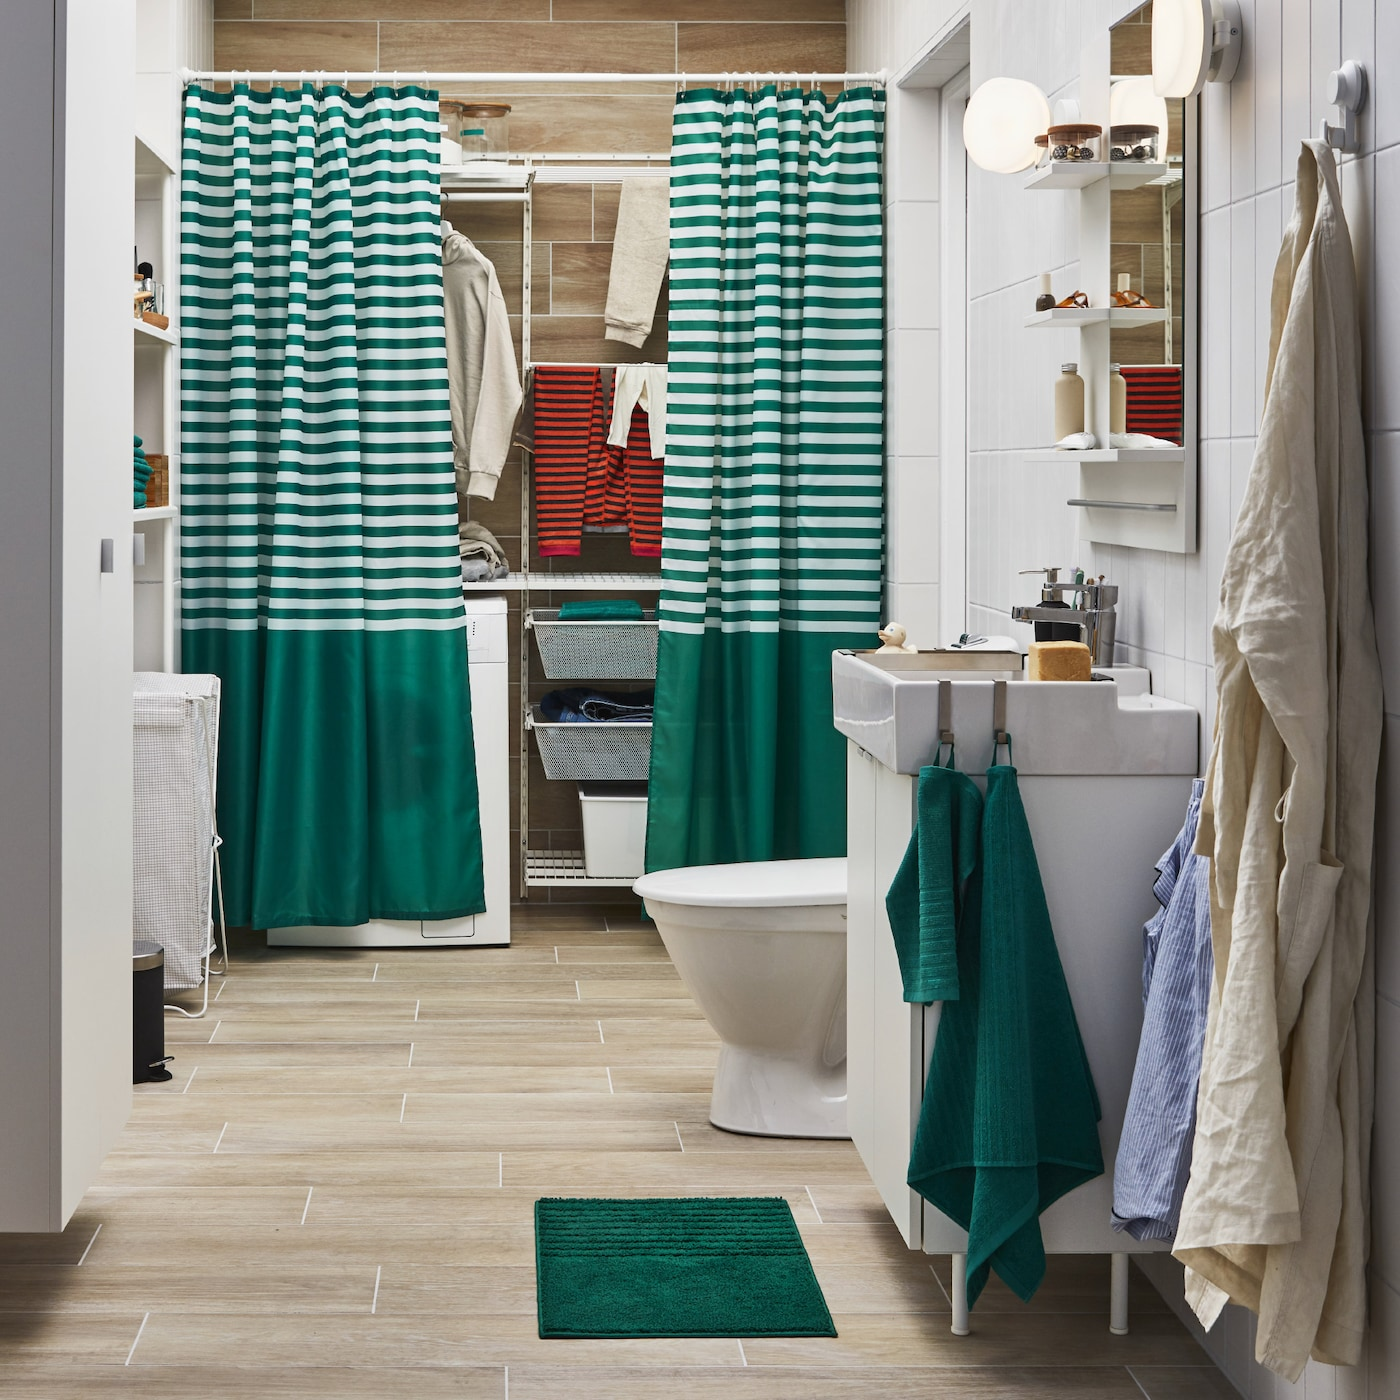 A bathroom with a laundry area that's half-hidden behind striped shower curtains, a white wash-basin and green towels.